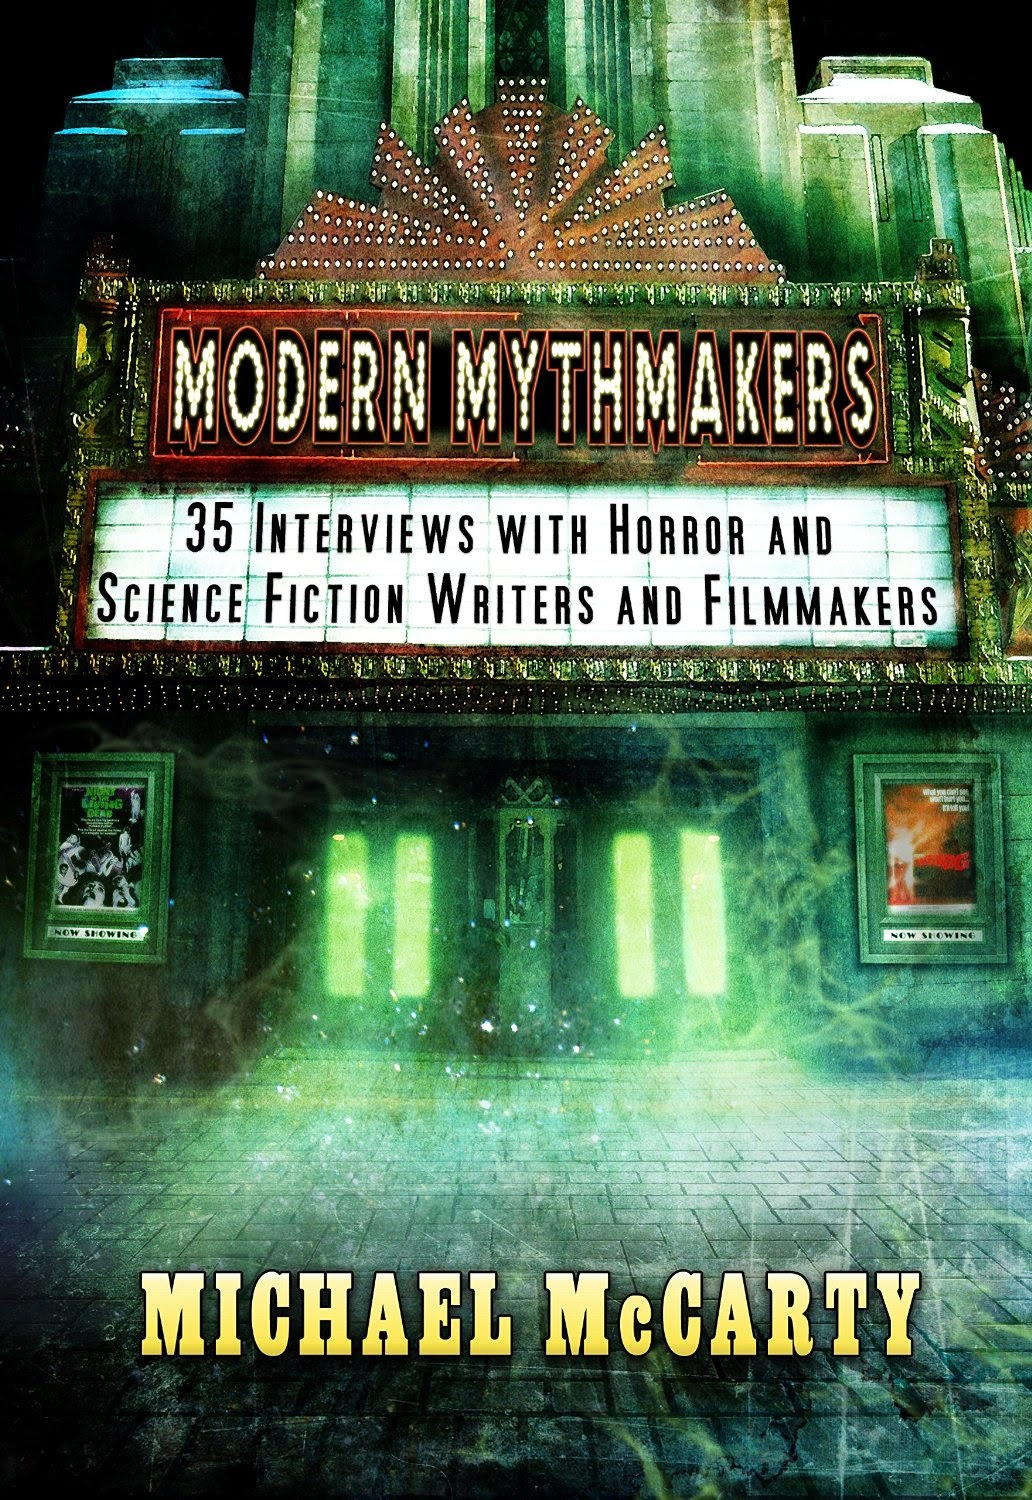 Top 10 Most Influential Science Fiction Writers